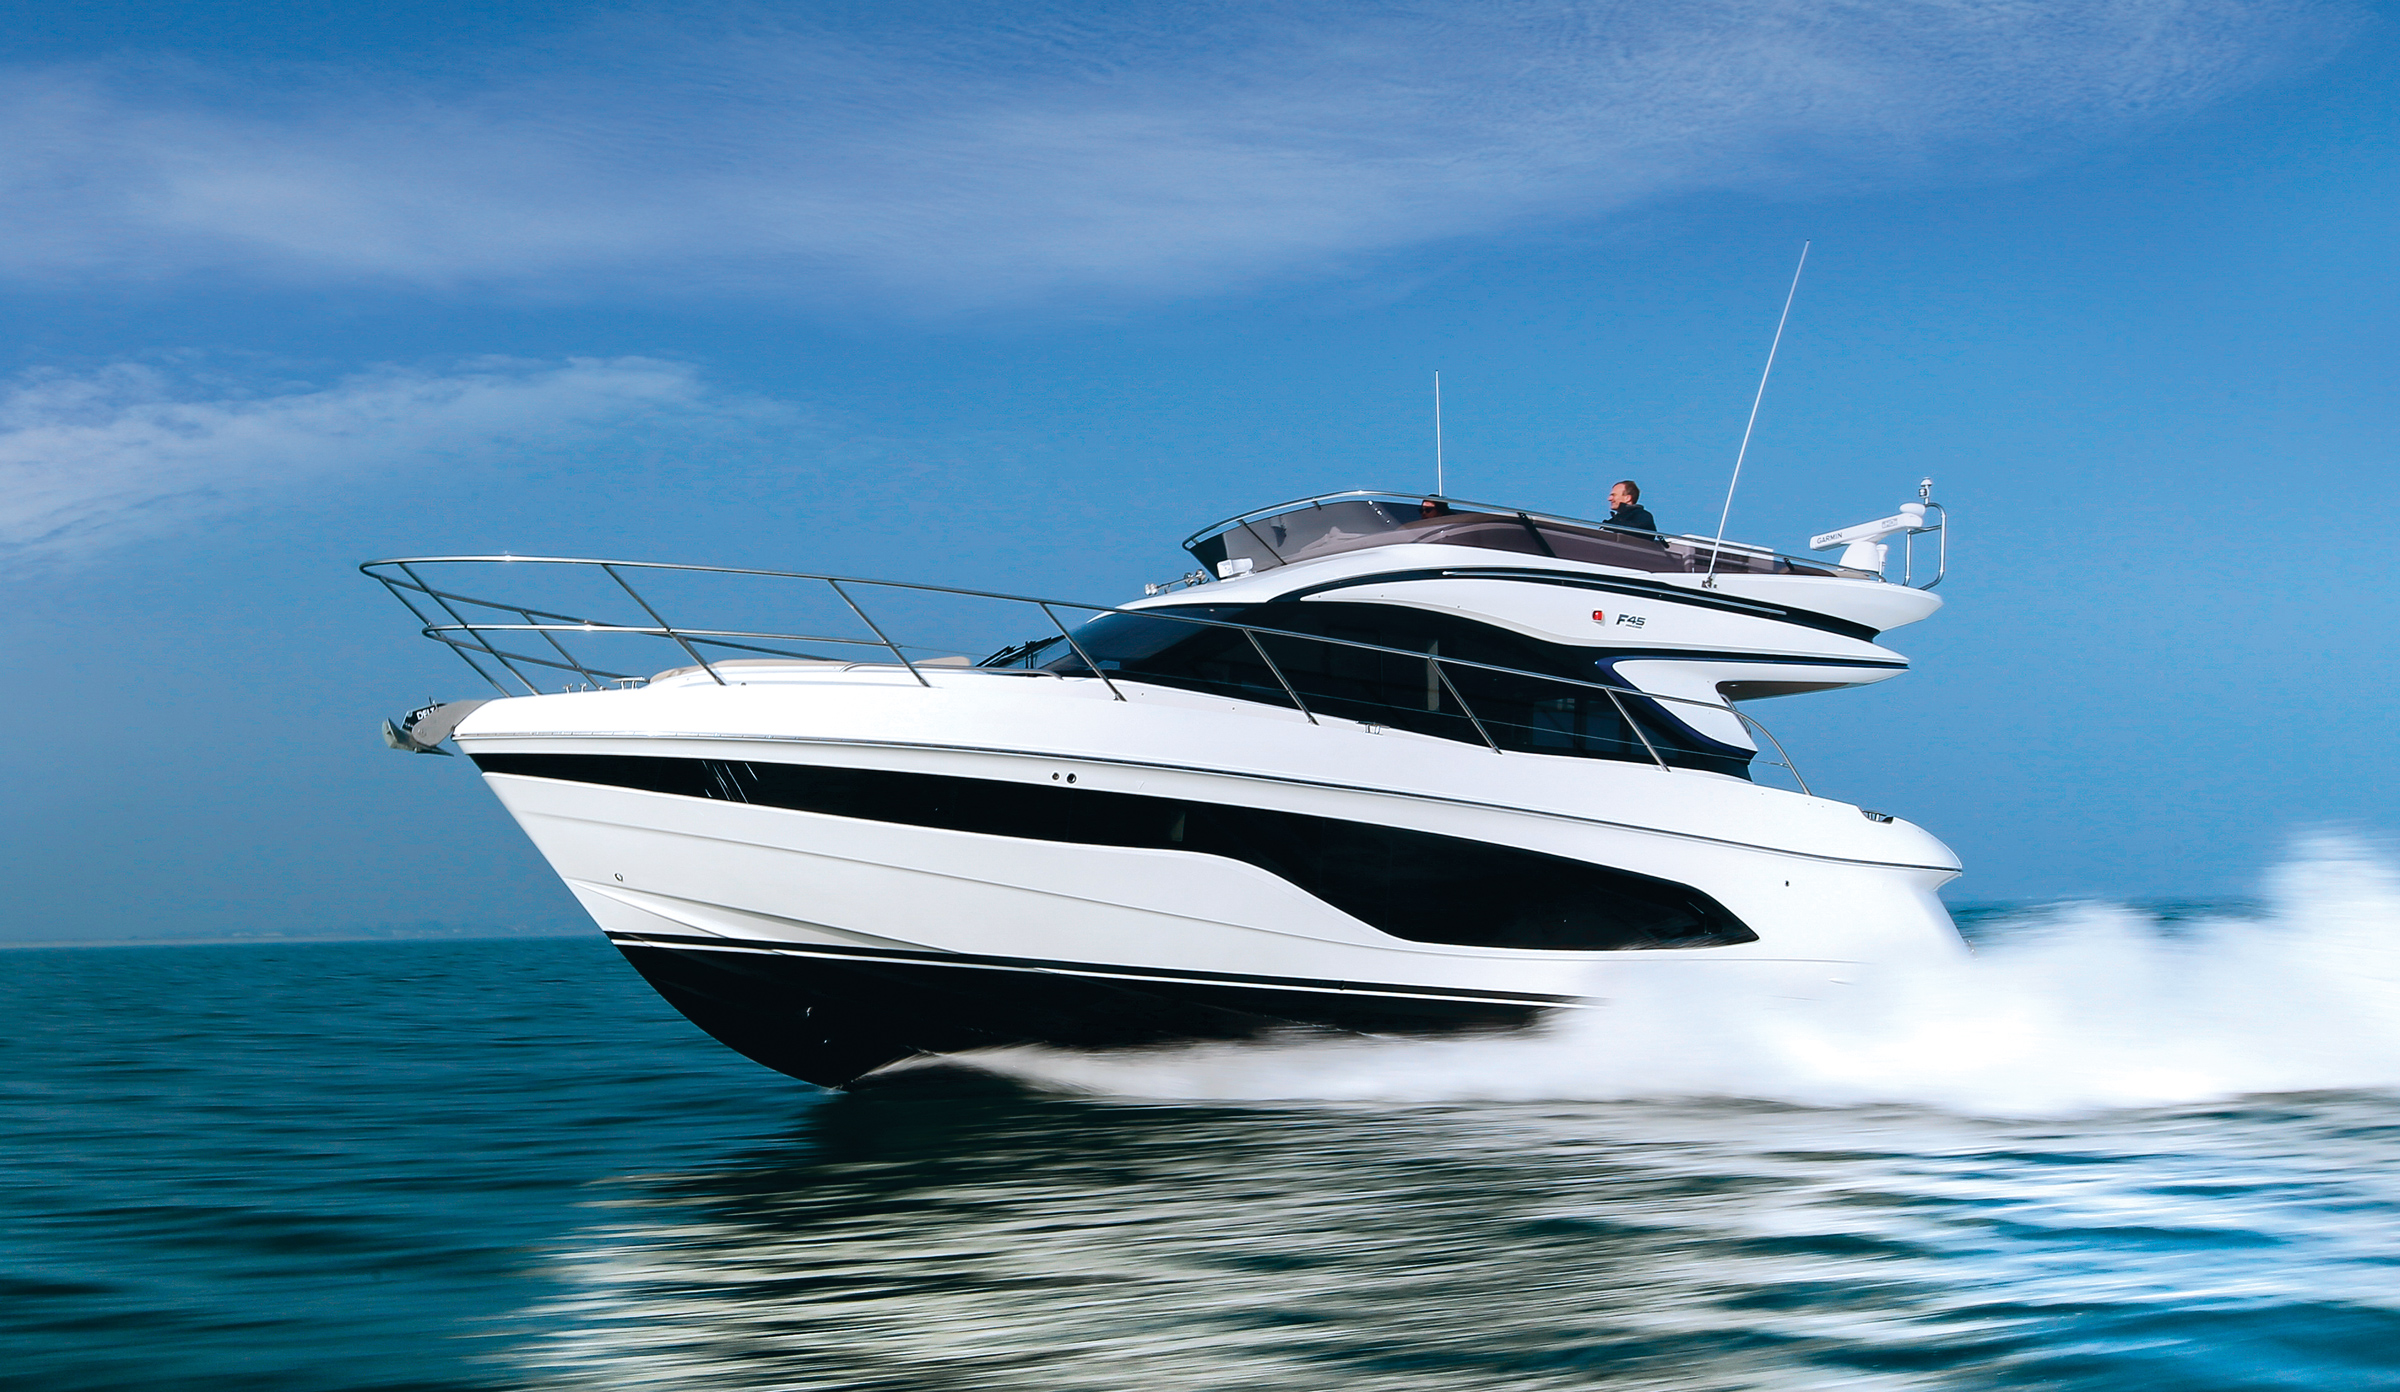 Princess F45 review: Could this be Princess's best flybridge yacht yet?